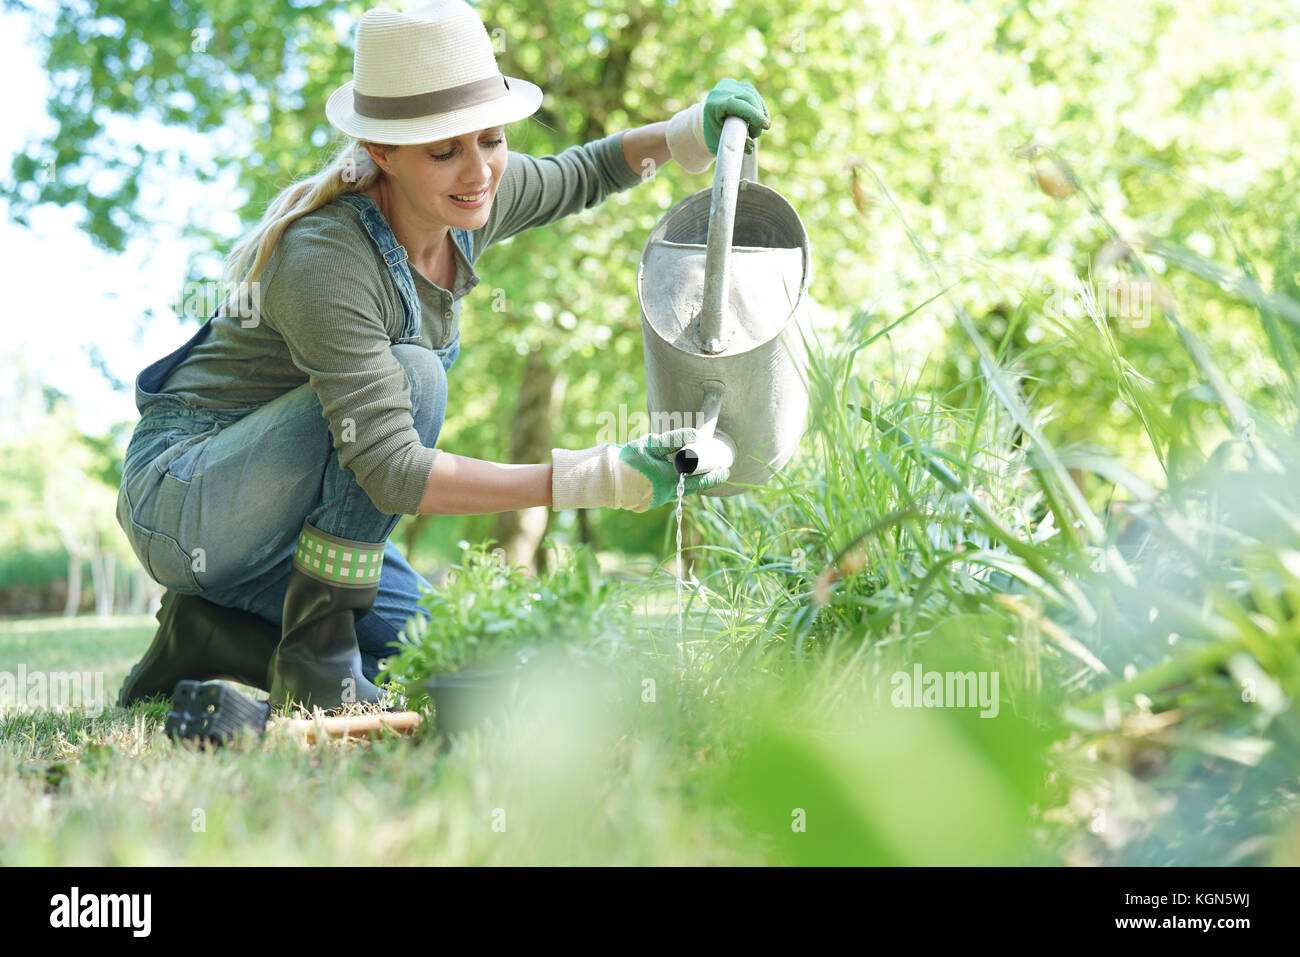 Blond woman with hat gardening - Stock Image